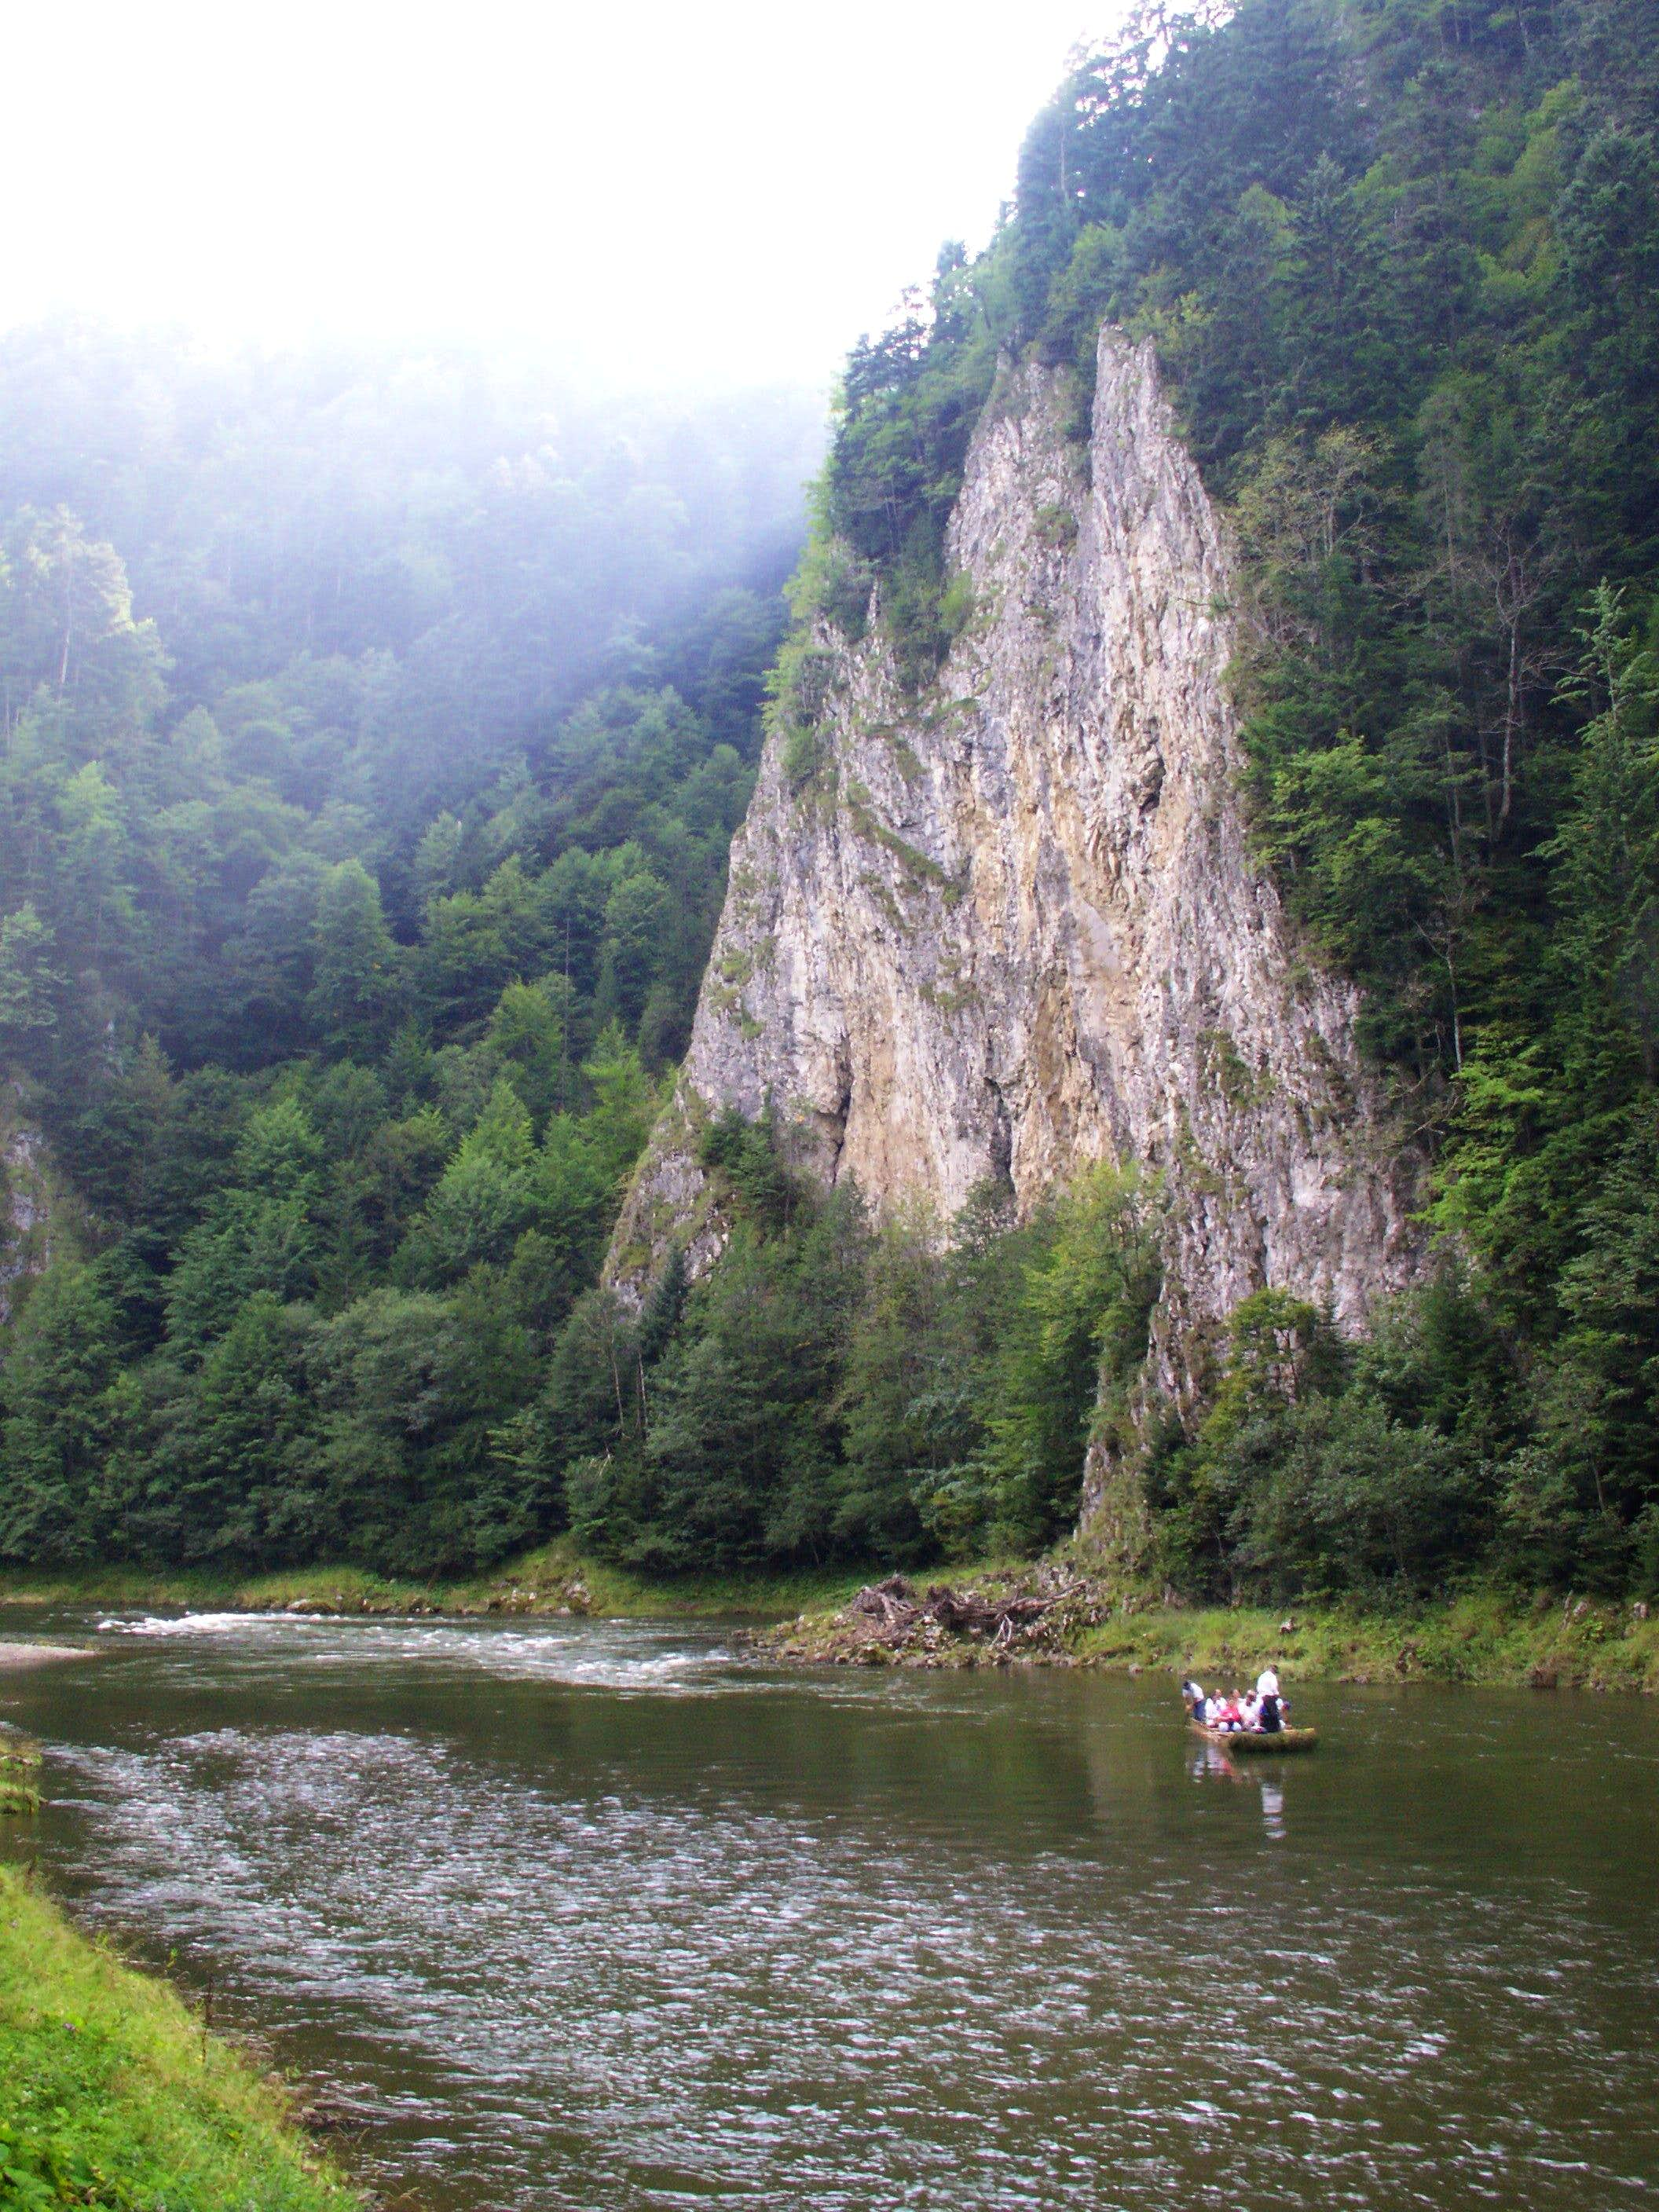 Rafting in the Pieniny Mountains